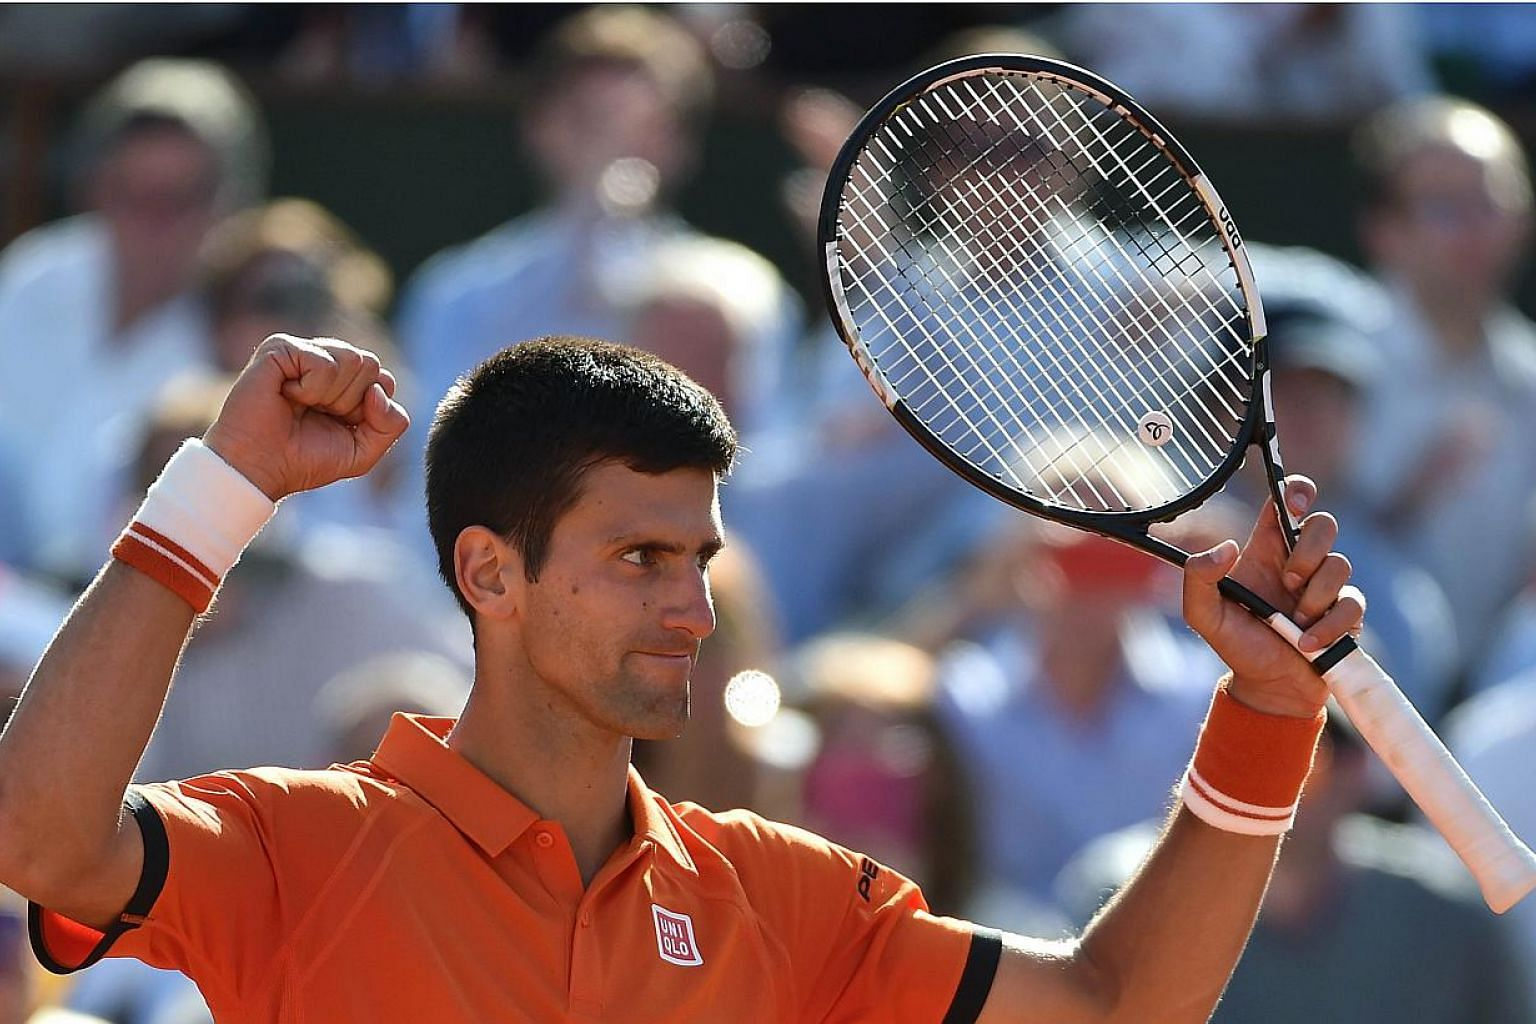 Serbia's Novak Djokovic celebrates his victory over Spain's Rafael Nadal at the end of their men's quarter final match of the Roland Garros 2015 French Tennis Open in Paris on June 3, 2015. -- PHOTO: AFP